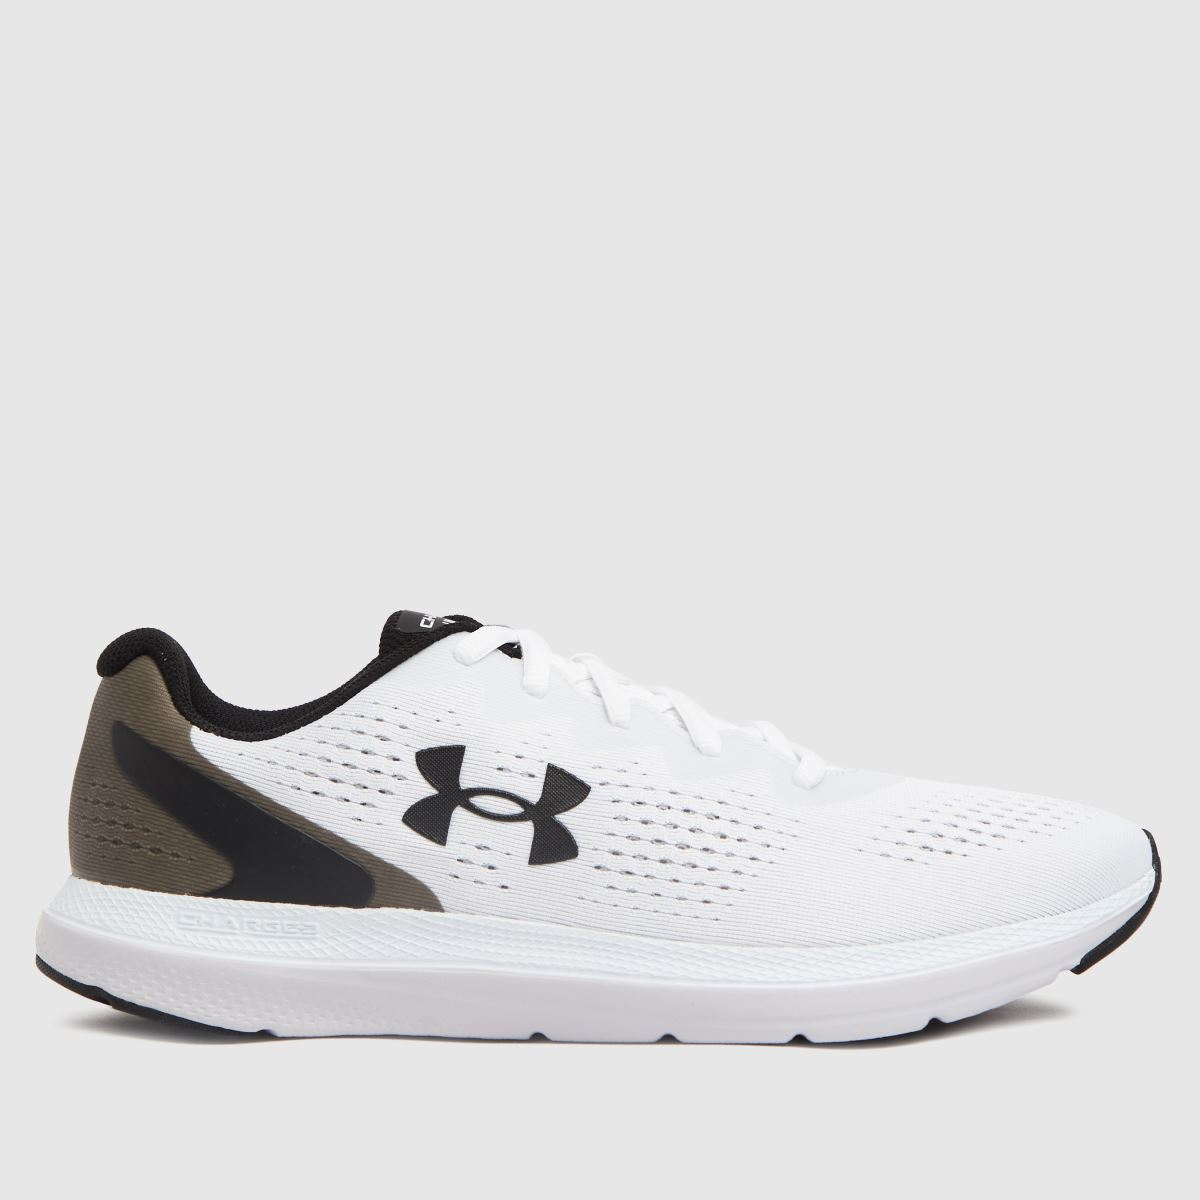 Under Armour White & Black Ua Charged Impulse 2 Trainers